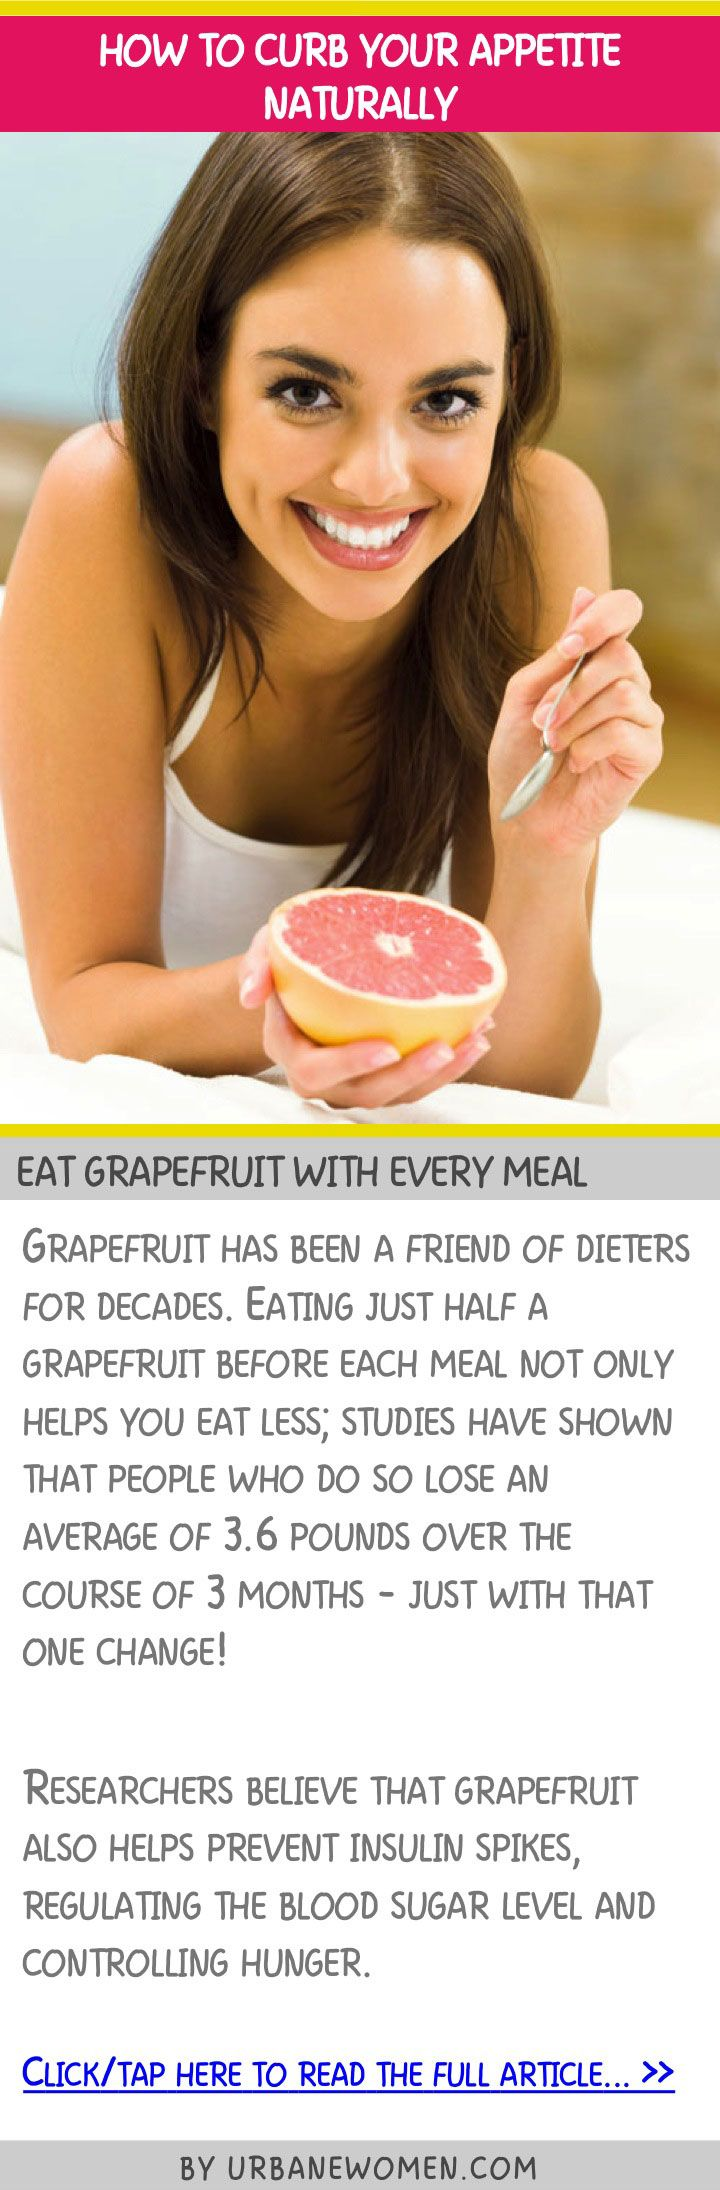 How to curb your appetite naturally - Eat grapefruit with every meal